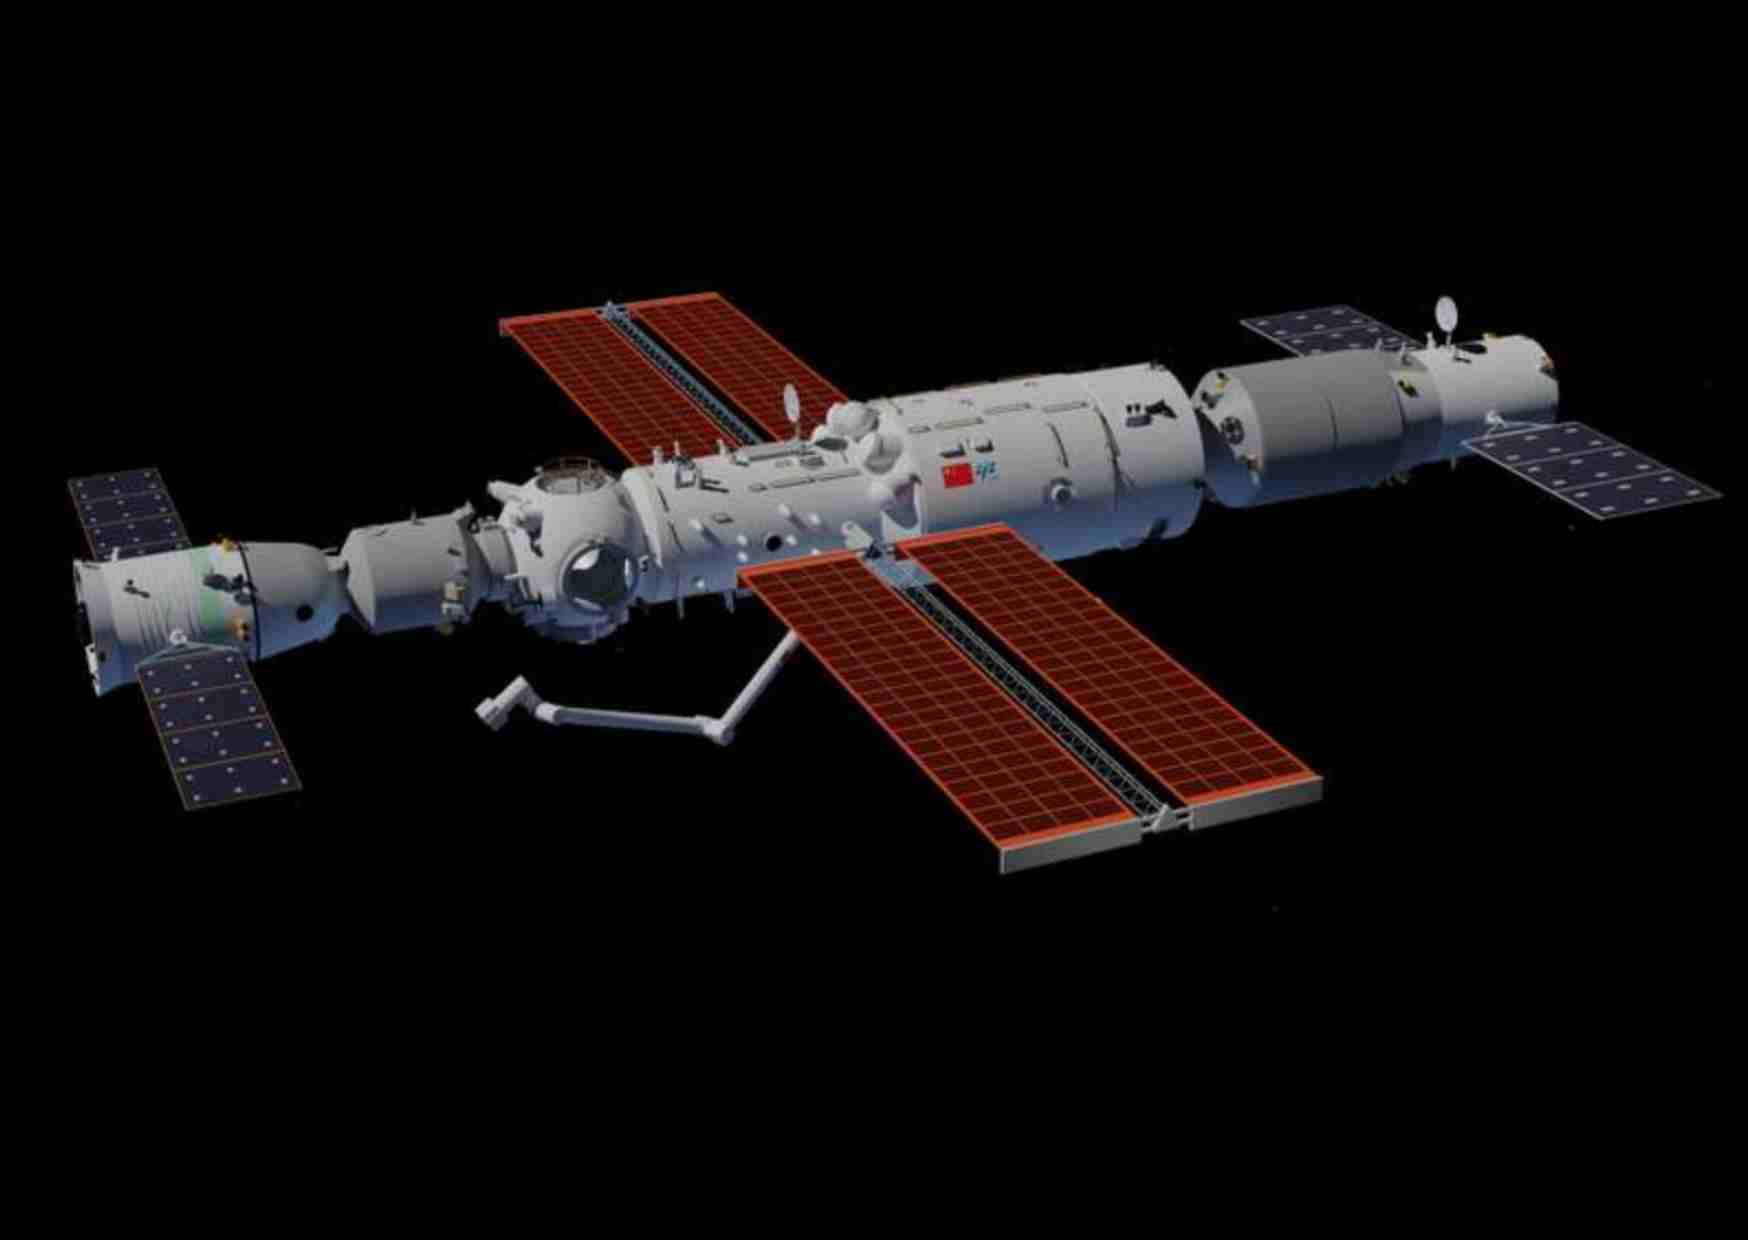 Complete information about China's Tiangong space station